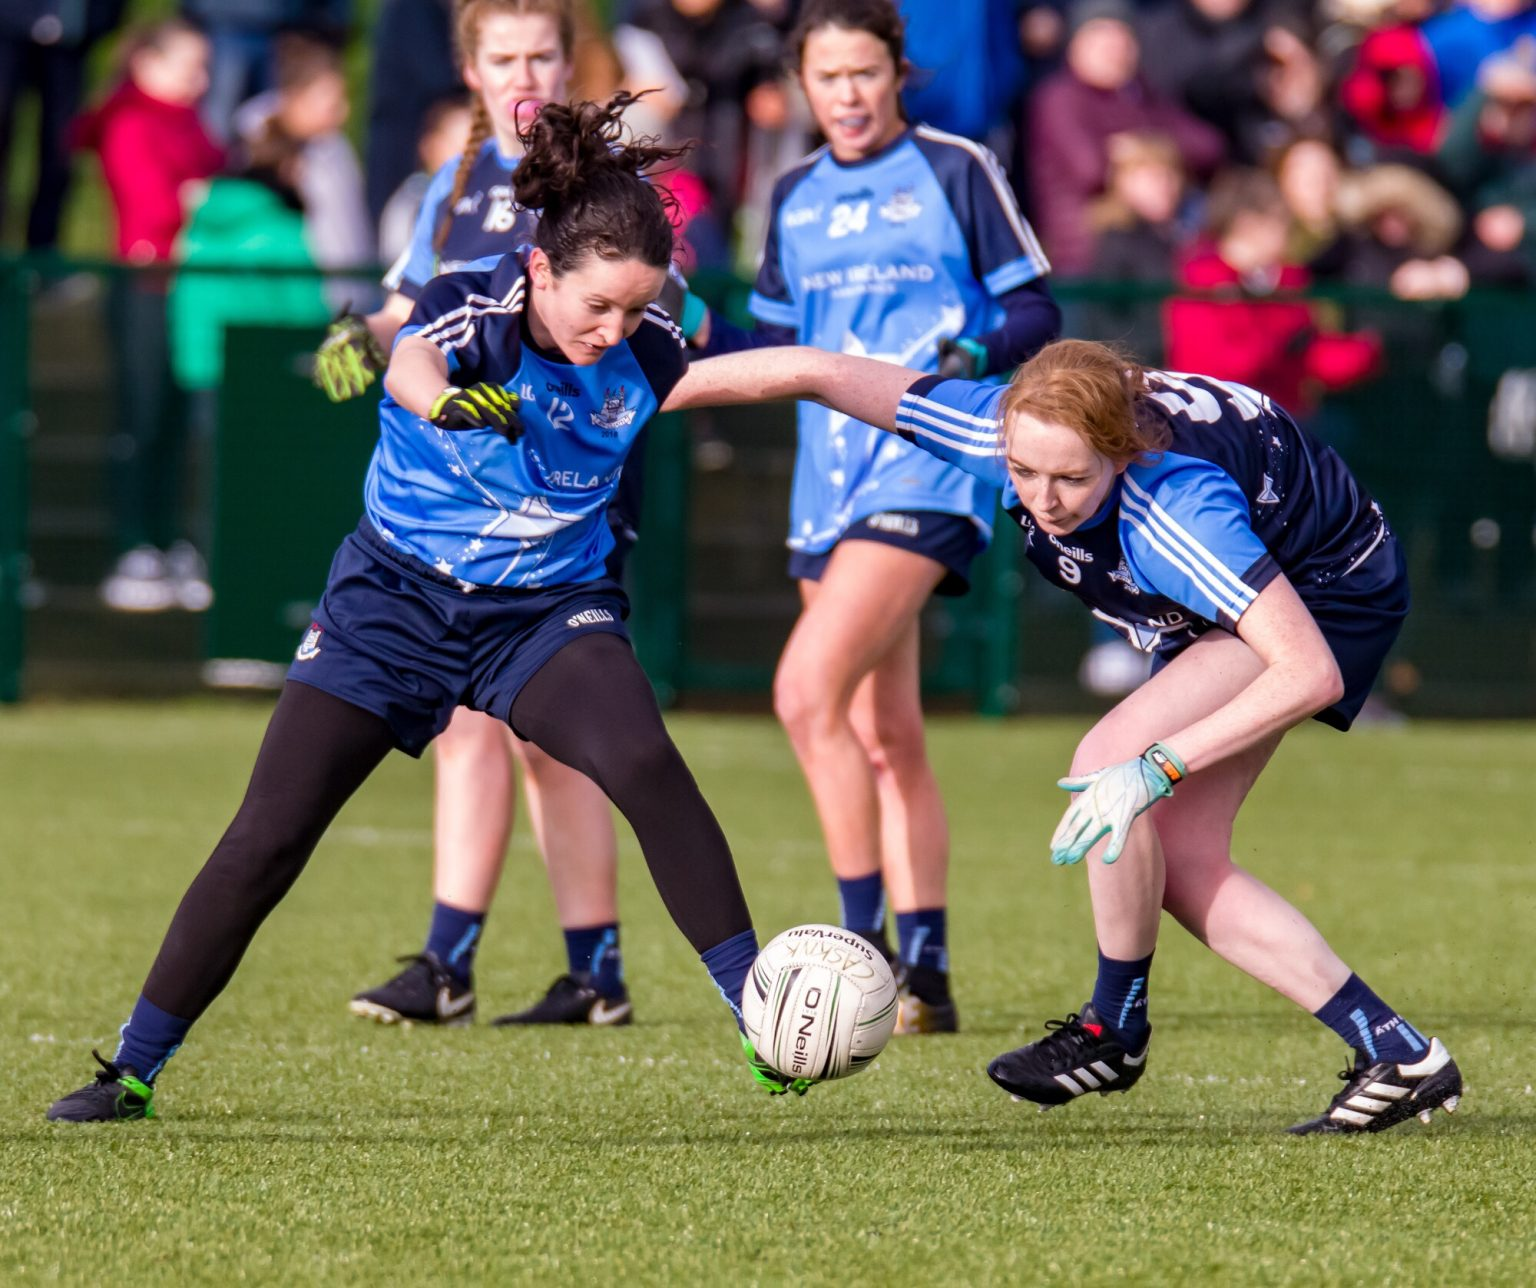 Two Ladies footballers battle for the ball during the Dublin LGFA Junior Dub Stars